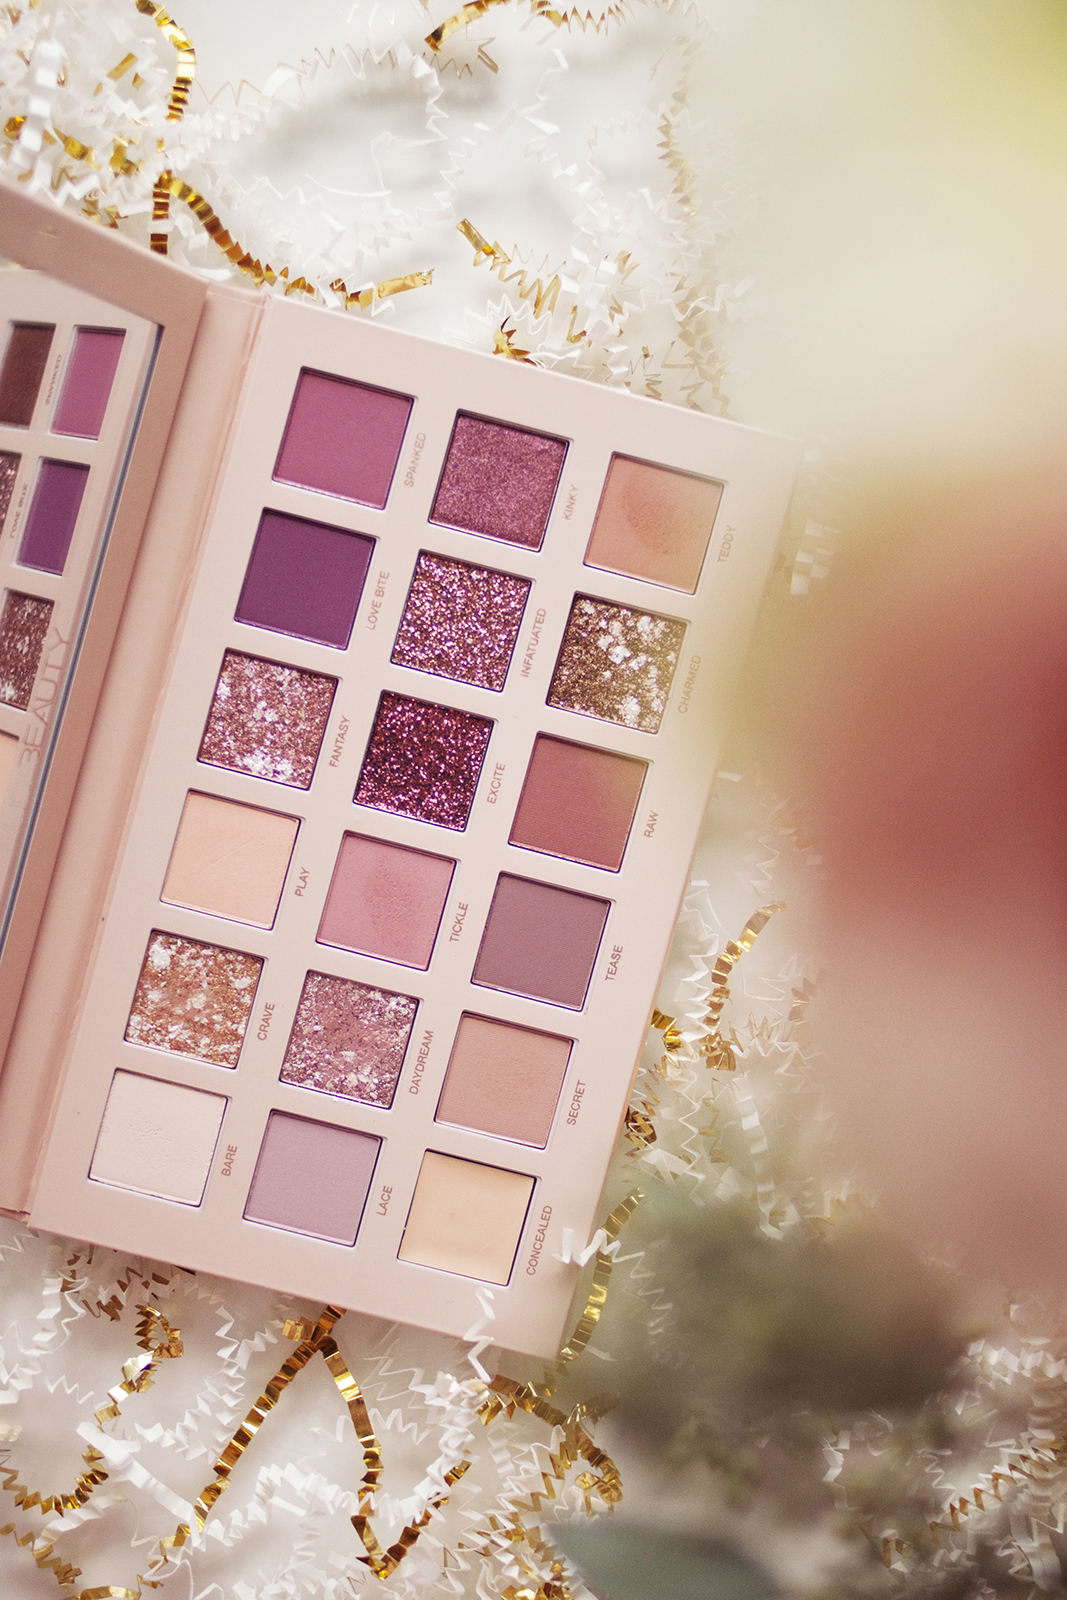 Eyeshadow - If the Charlotte Tilbury duo is the star of the show for my base, for the eyes it has to be Huda Beauty's The New Nude Palette (AU). Oh my god. If you guys remember in my beauty favourites for 2017 I talked about how much I'd enjoyed browny-pink eyeshadows that year, and the obsession has only grown since then. I hadn't been able to find what I wanted in palettes and so resorted to only buying single shadows this year as they were all I could find to scratch my itch. There are lots of palettes out there with berry-pink shades, but as a neutrals-lover at heart, everything I had seen was too colourful or too dark, or only contained one shade that I really wanted. As soon as I saw photos of this online I knew it was the answer to my prayers.This palette contains 18 shadows, 10 of which are mattes. Neutral-brown-pink mattes are what I've been looking for, and of the 10 in this palette I could use 8 of them without even thinking about it, and the two deeper shade at the end of the top row are the only ones I'm a little more intimidated by. But there rest are PERFECTION. They're exactly what I've been looking for and I feel like I have so many options with this palette that I have a hard time choosing which shades to go for, which is a rare feeling for me.The palette contains one cranberry shimmer shade which I've used but probably won't reach for all the time, as well as two deep pink pressed glitters. I'd prefer if one of these were more of a champagne shade or a lighter pink as they're very similar and we probably didn't need both. There's also a creamy primer (the first in the bottom row), which is a nice inclusion that makes the palette a little easier to travel with. I raised an eyebrow at the shade choice at first, but it's a very sheer formula so it should still work across quite a range of skin tones, but it's by no means universal.